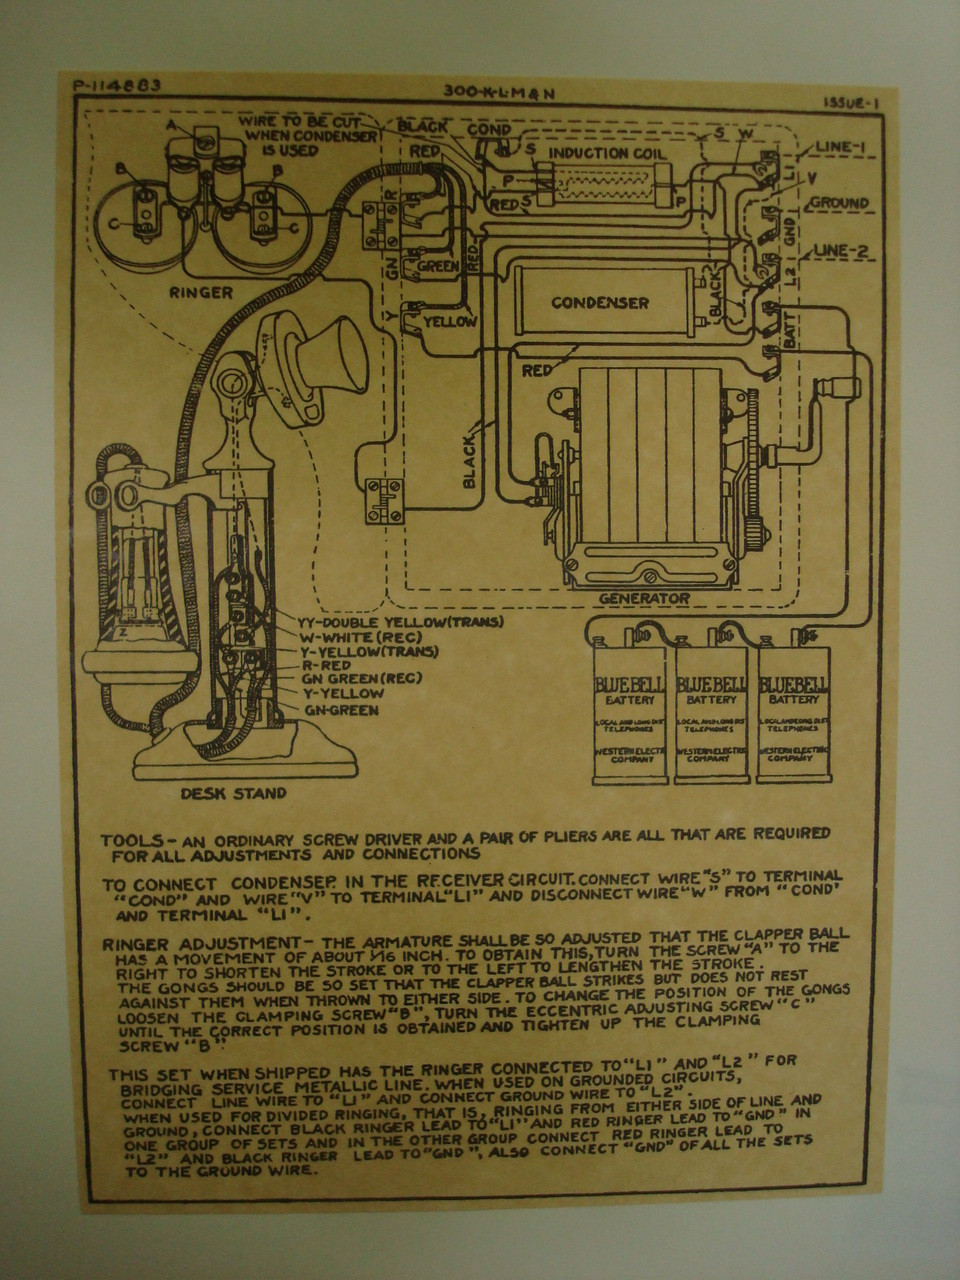 wooden magneto box and candlestick wiring diagram glue on old70s Phone Wiring Diagram #1